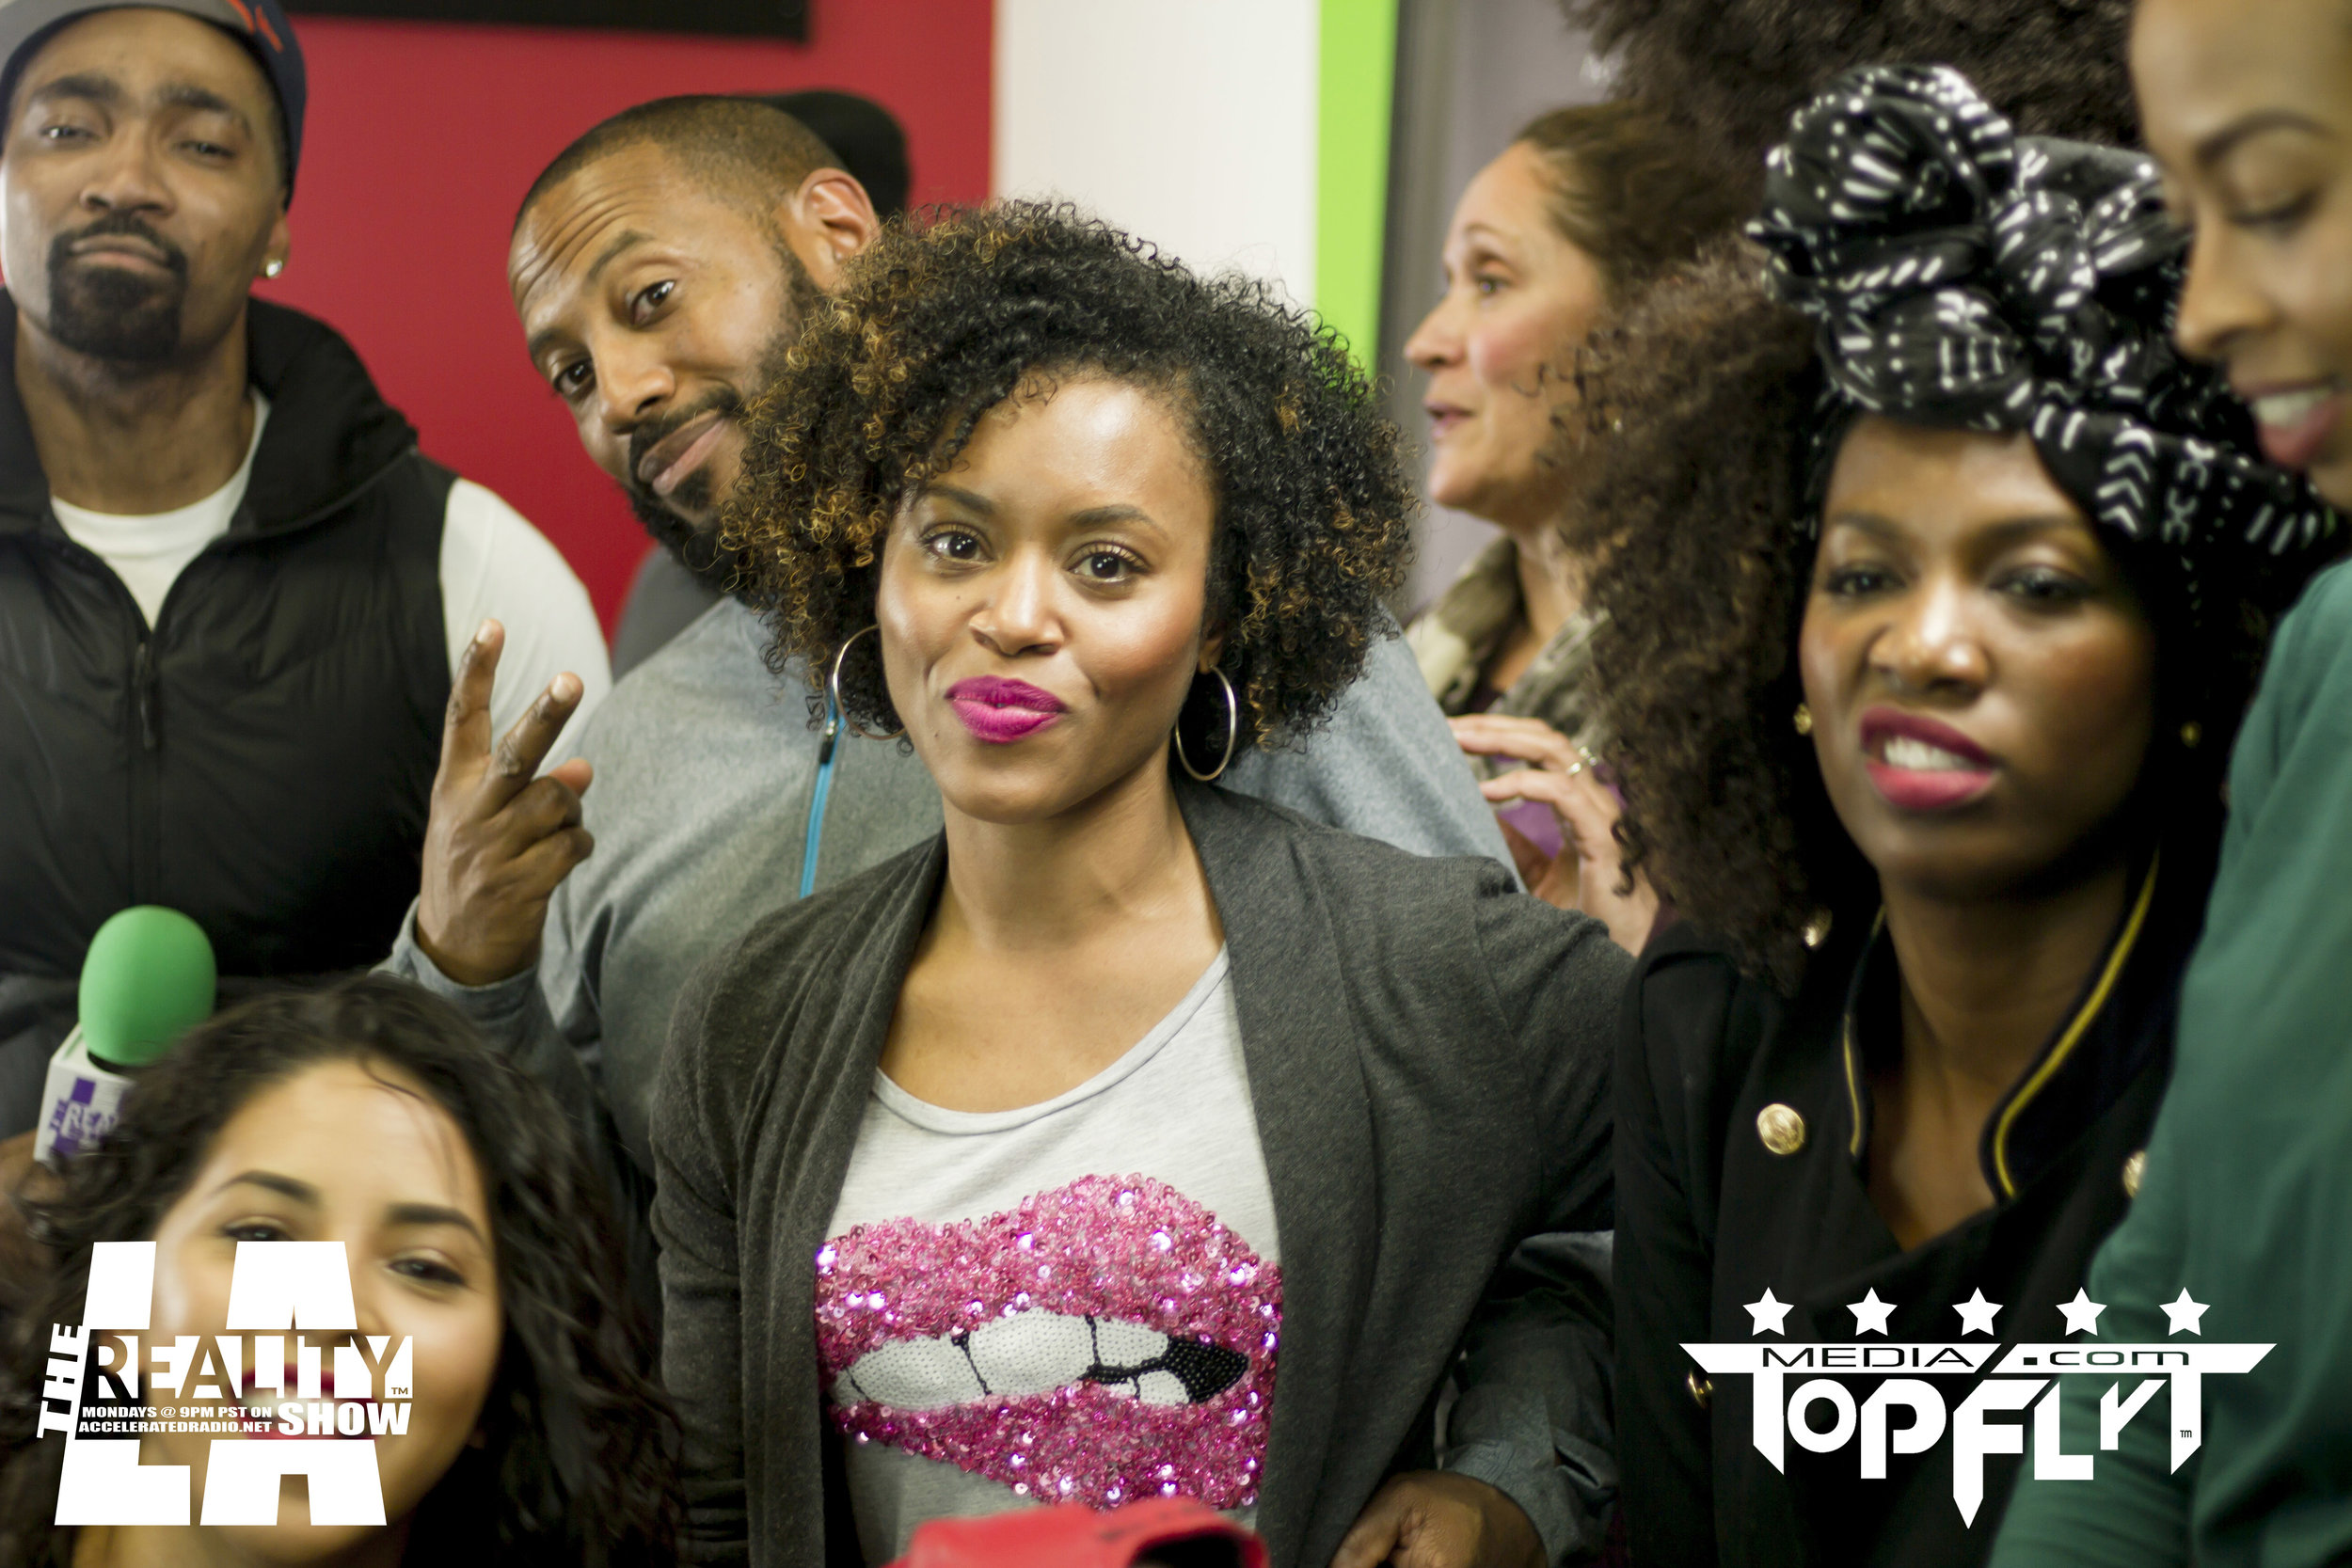 The Reality Show LA ft. Cast of FunnyMarriedStuff And Raquel Harris - 01-16-17_16.jpg